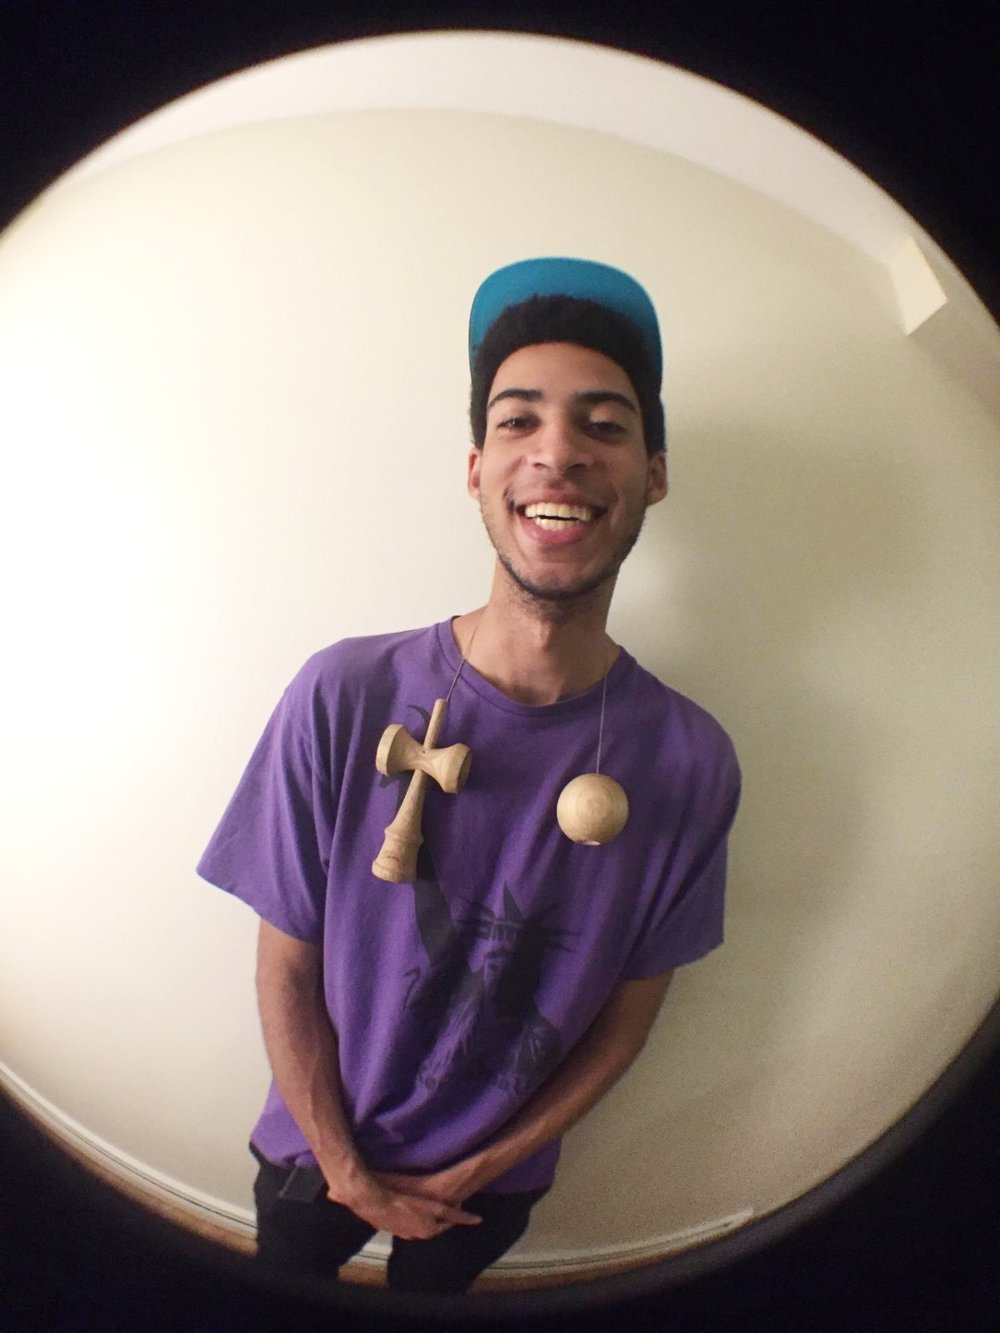 michael-joseph-reeves-kendama-player